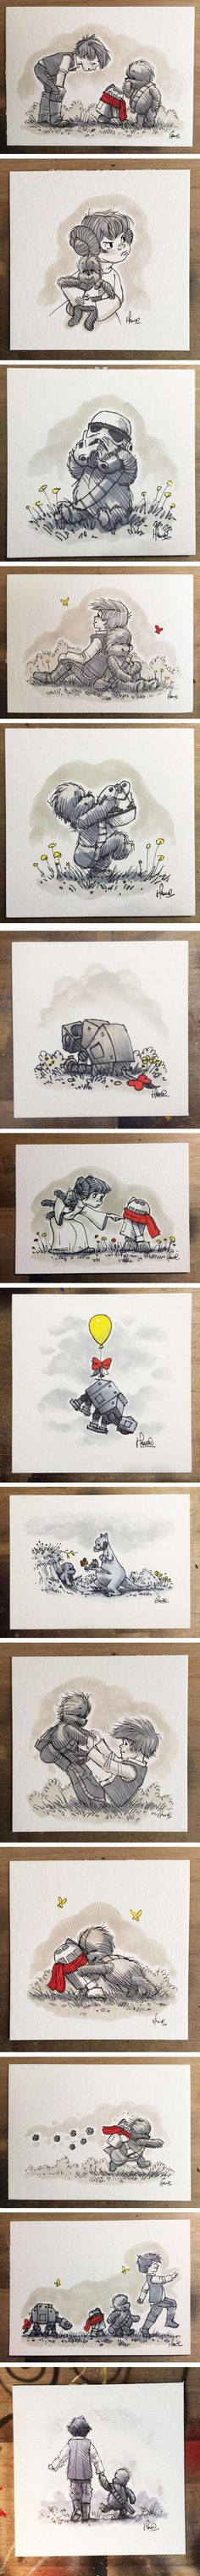 Star Wars Characters Reimagined As Winnie The Pooh And Friends (By James Hance)...